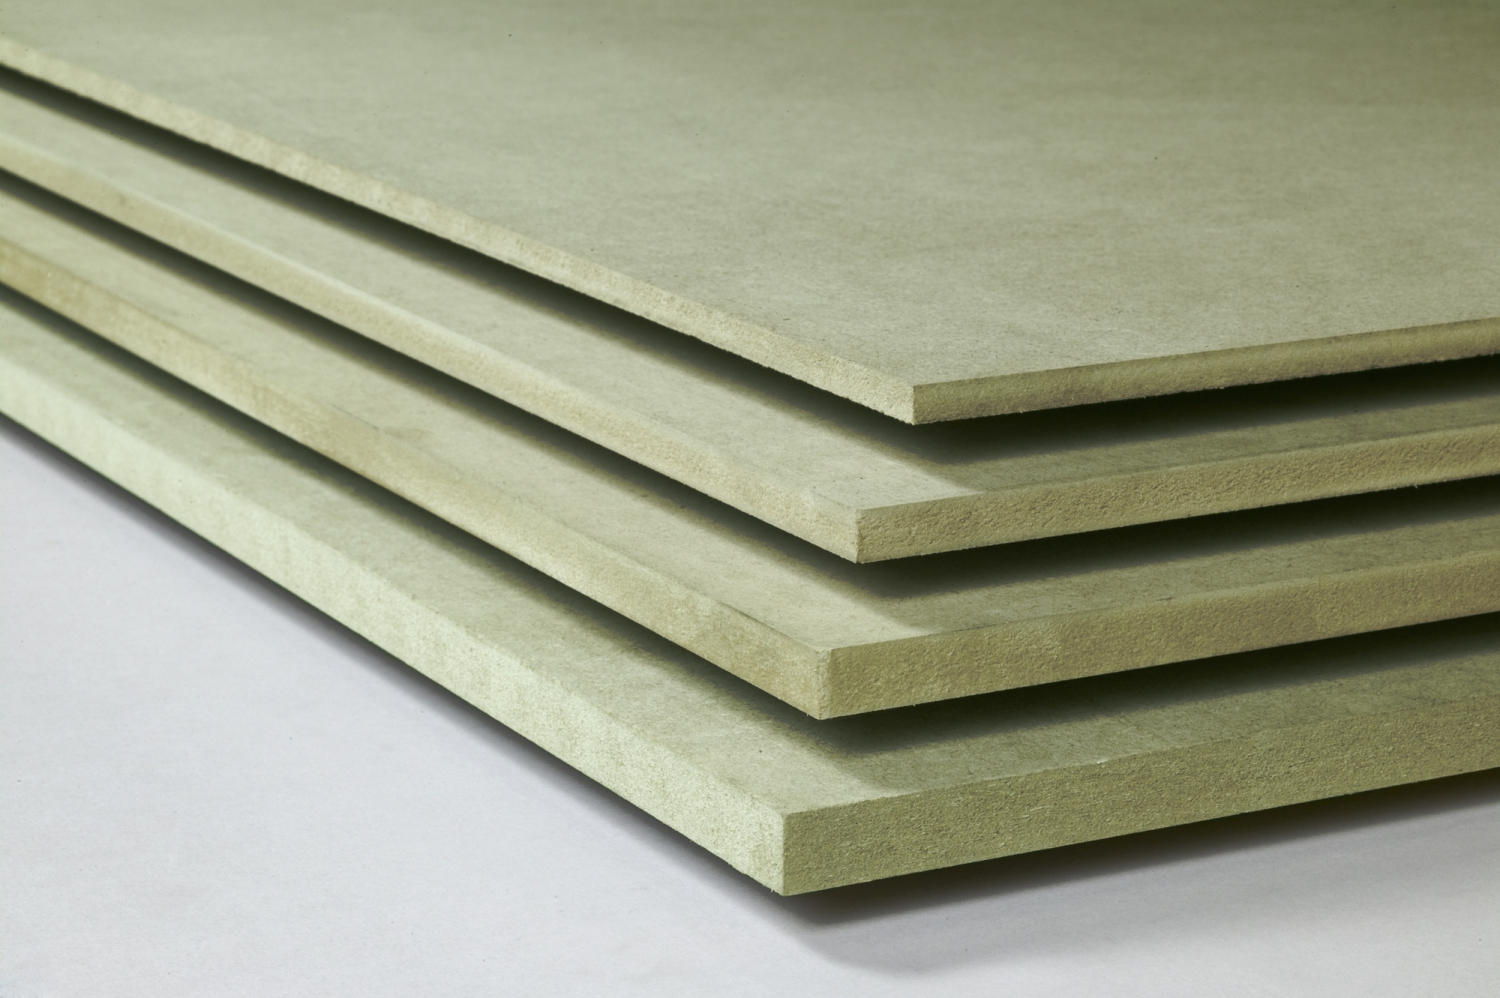 Mdf Plaat St Middelkoop Zn Bv Mdf Plaat 1220mm X 2440mm X 18mm